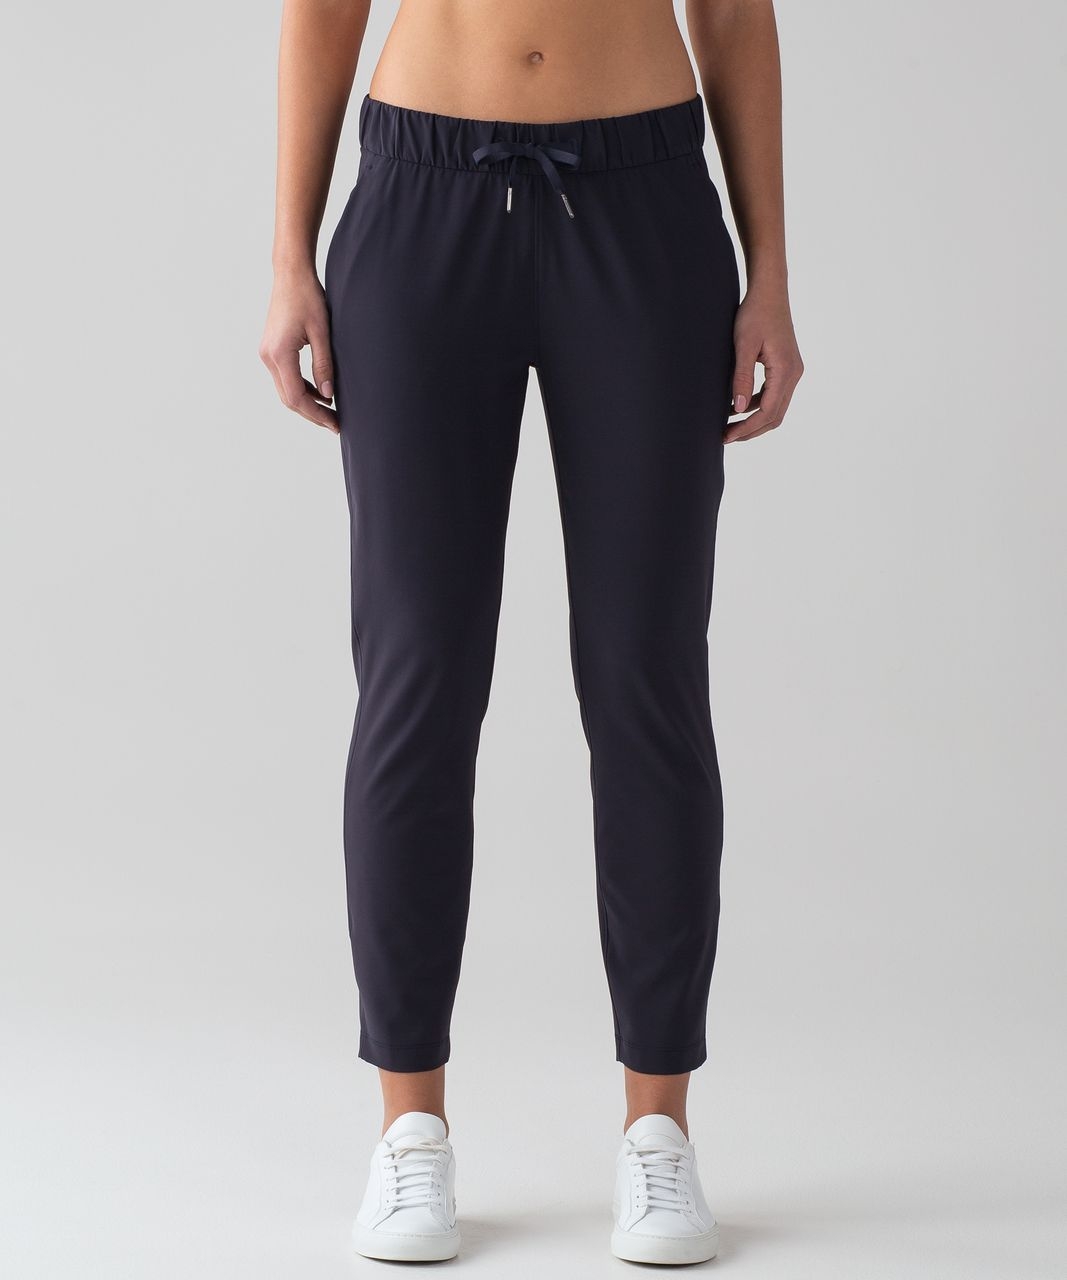 7ba3fdf80 Lululemon On The Fly Pant  Woven 28